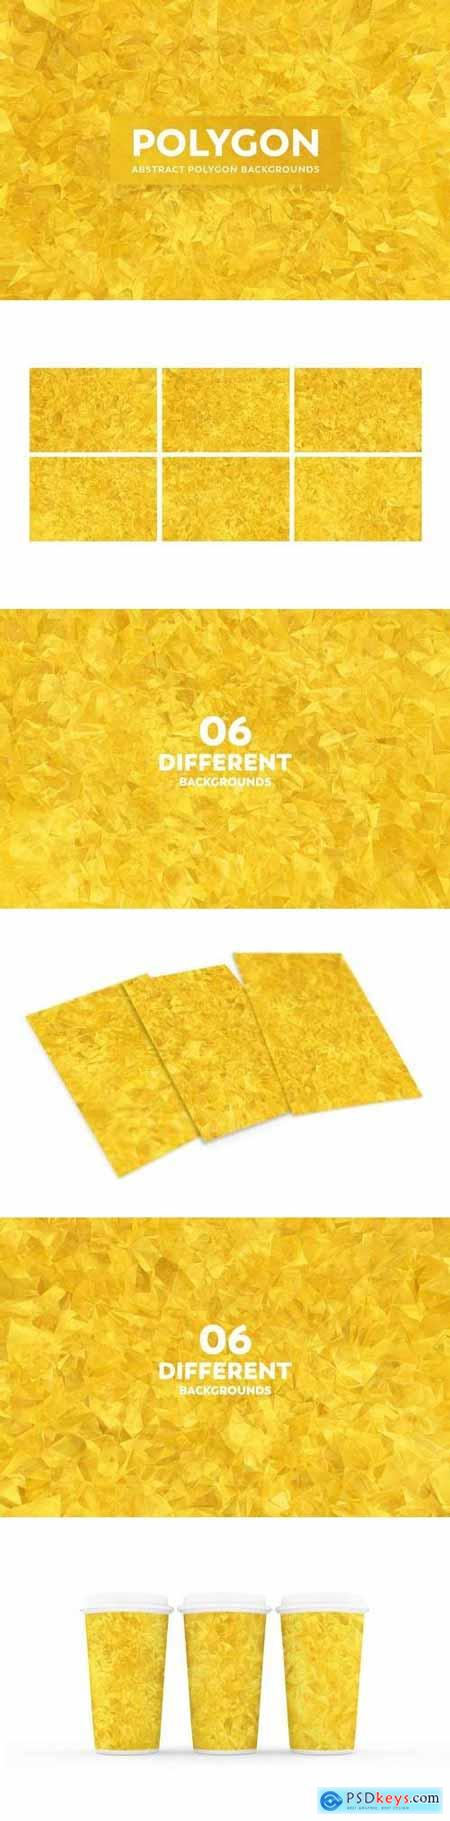 Abstract Polygon Backgrounds - Gold Color